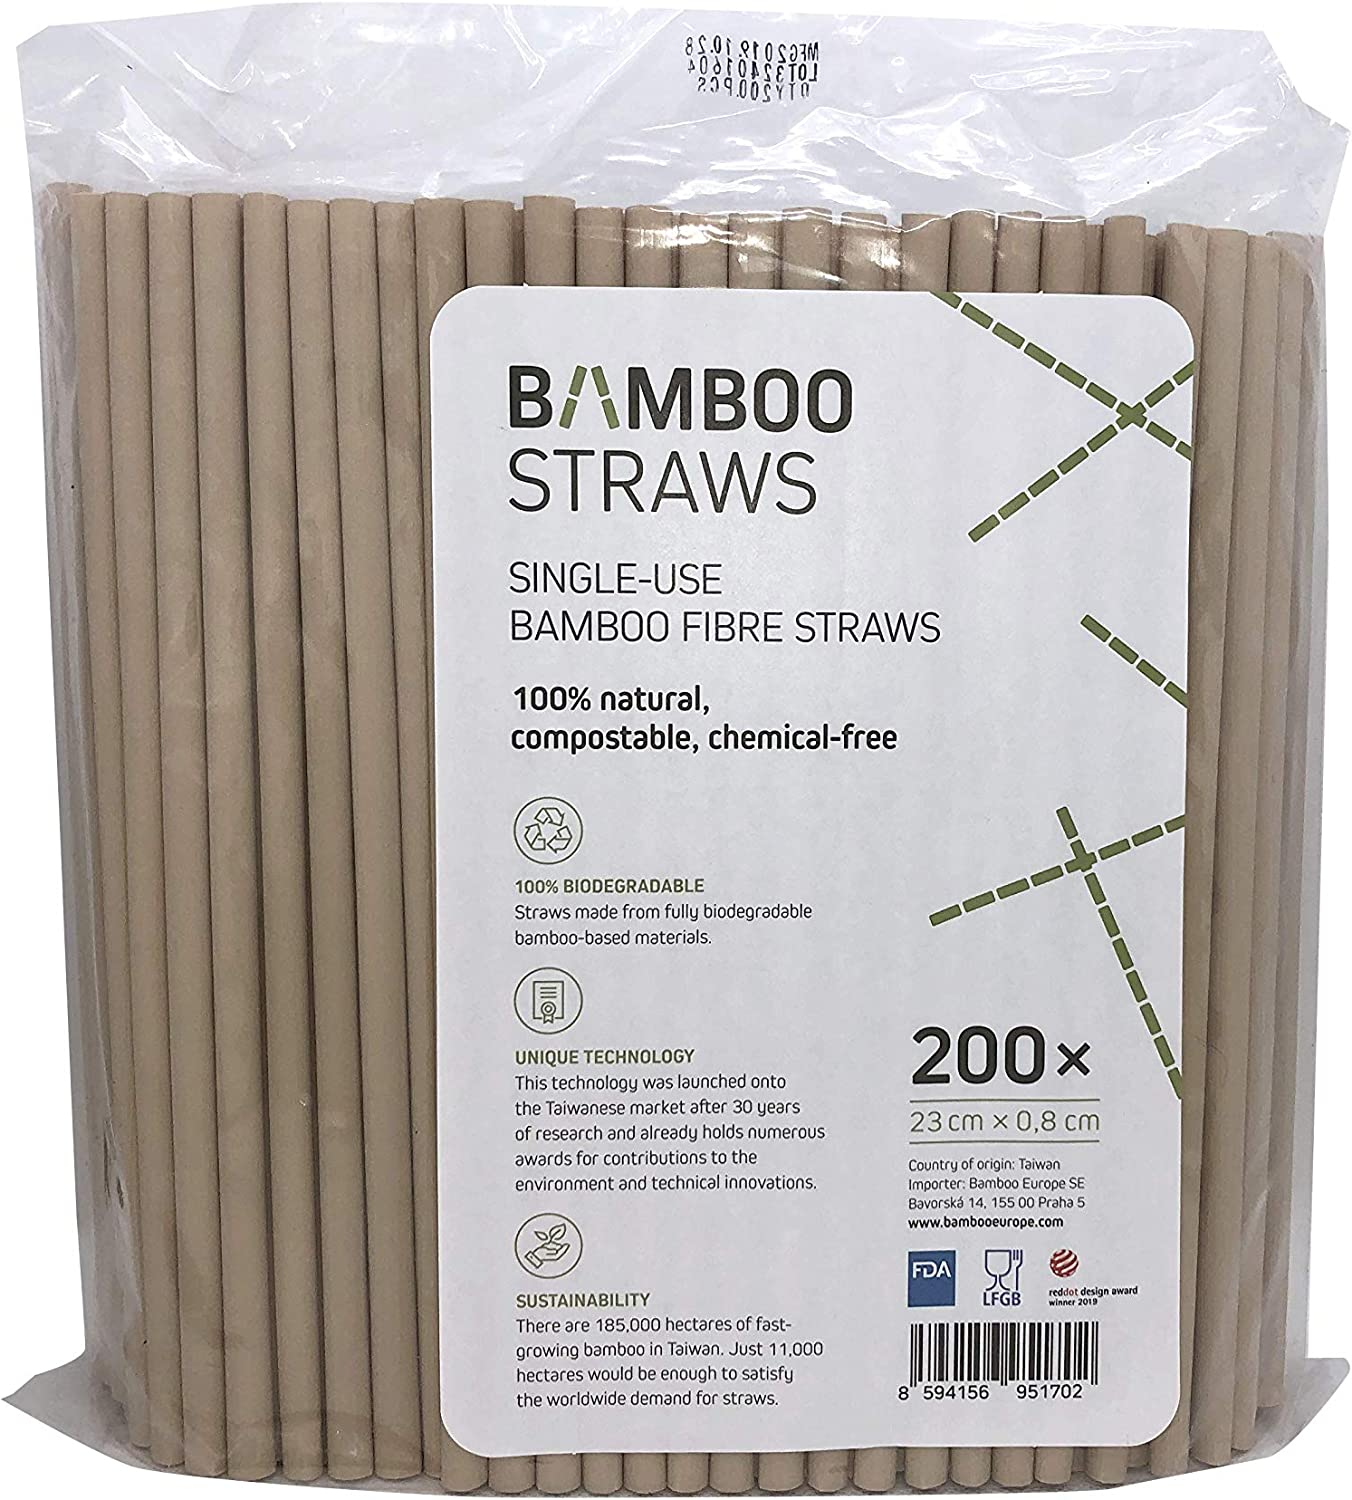 Bamboo Drinking Straws Single Use 200pcs Compostable 100/% Natural Straws Biodegradable Eco Friendly Drinks Disposable Straw Chemical-Free Biodegradable Plastic-Free 8mm X 23 cm